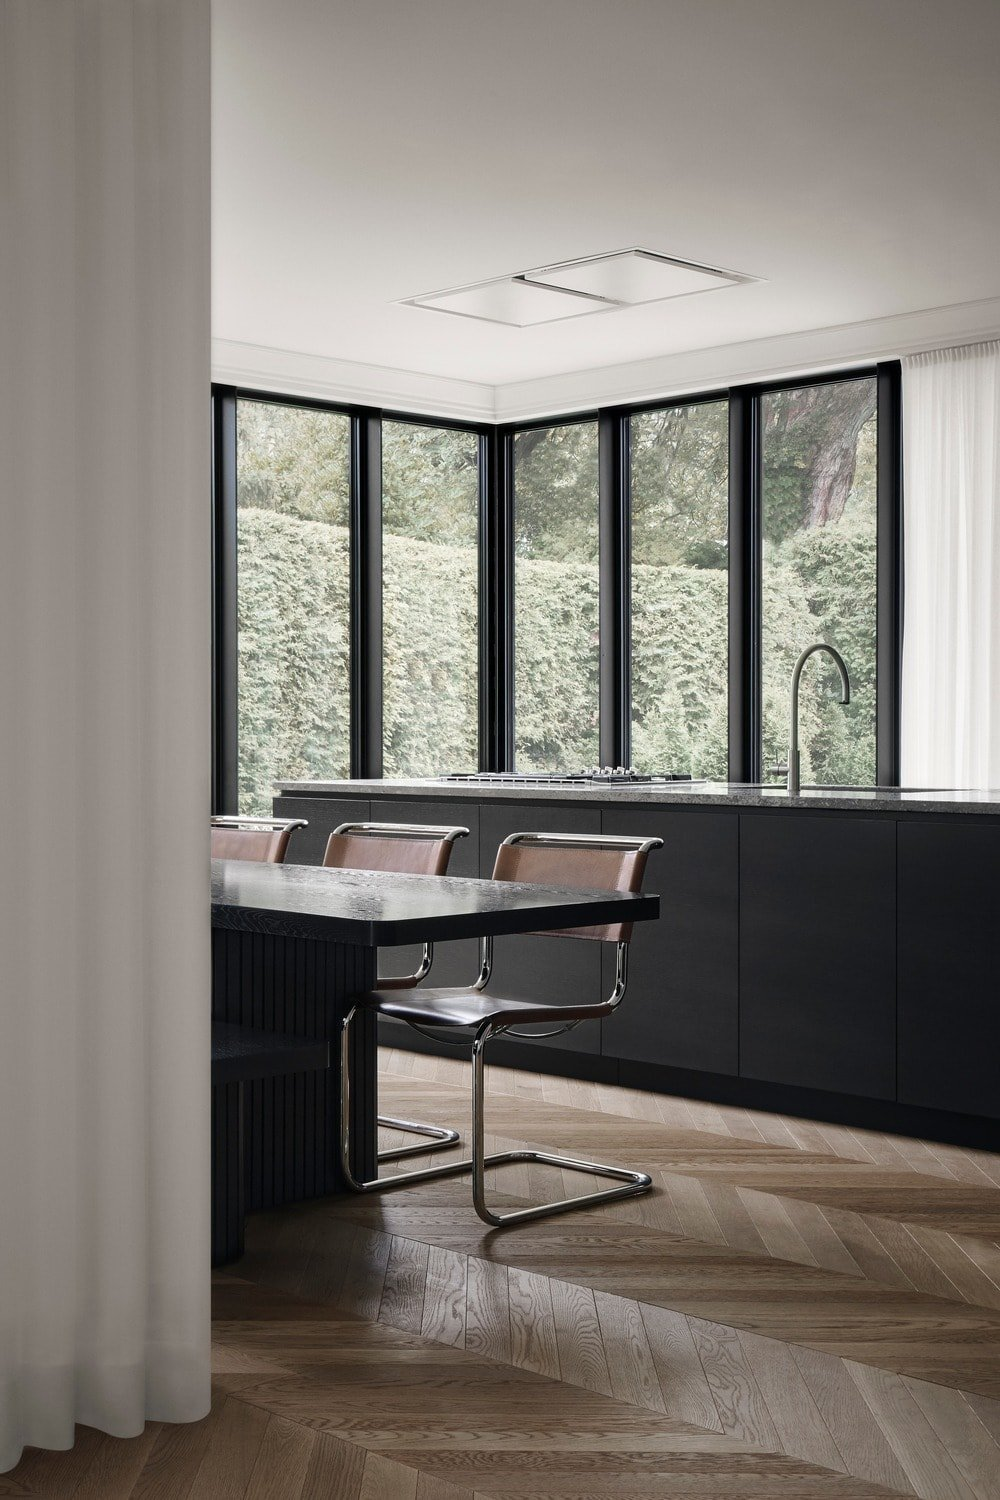 The dining area has a black dining table surrounded by modern chairs and a wooden bench.